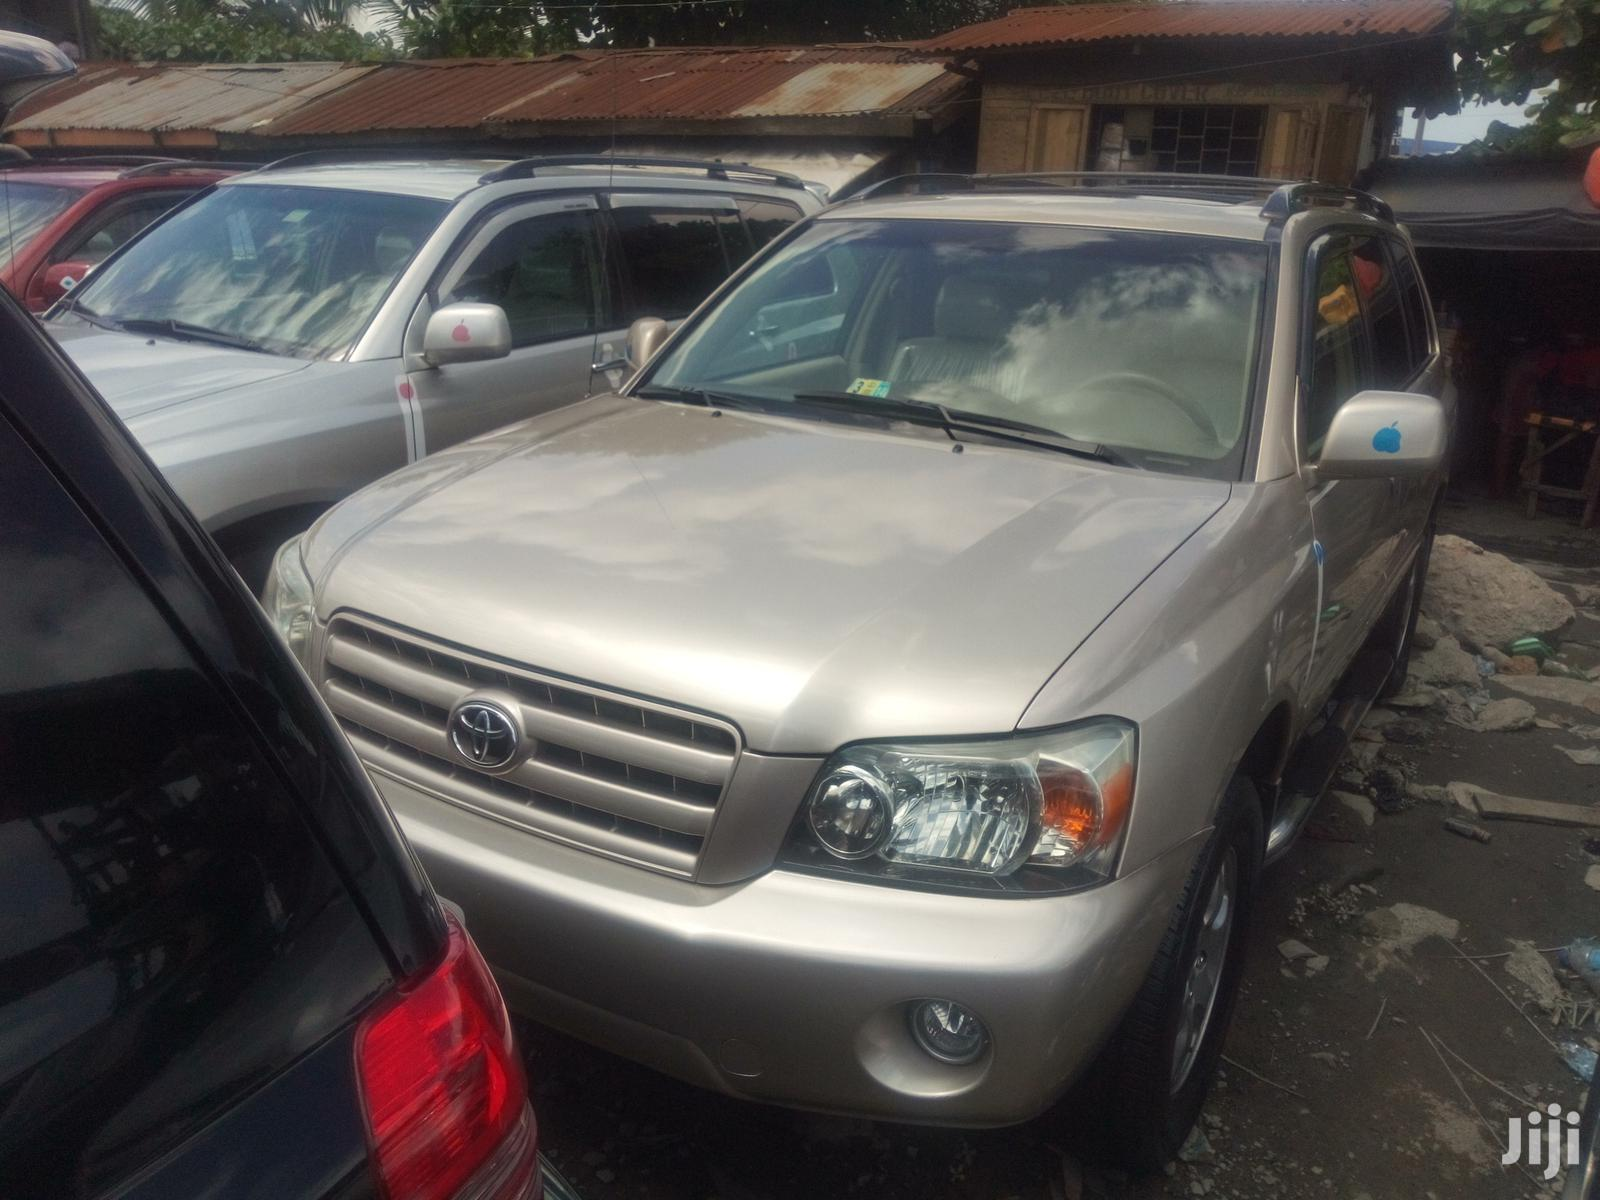 Toyota Highlander 2004 Gold   Cars for sale in Apapa, Lagos State, Nigeria